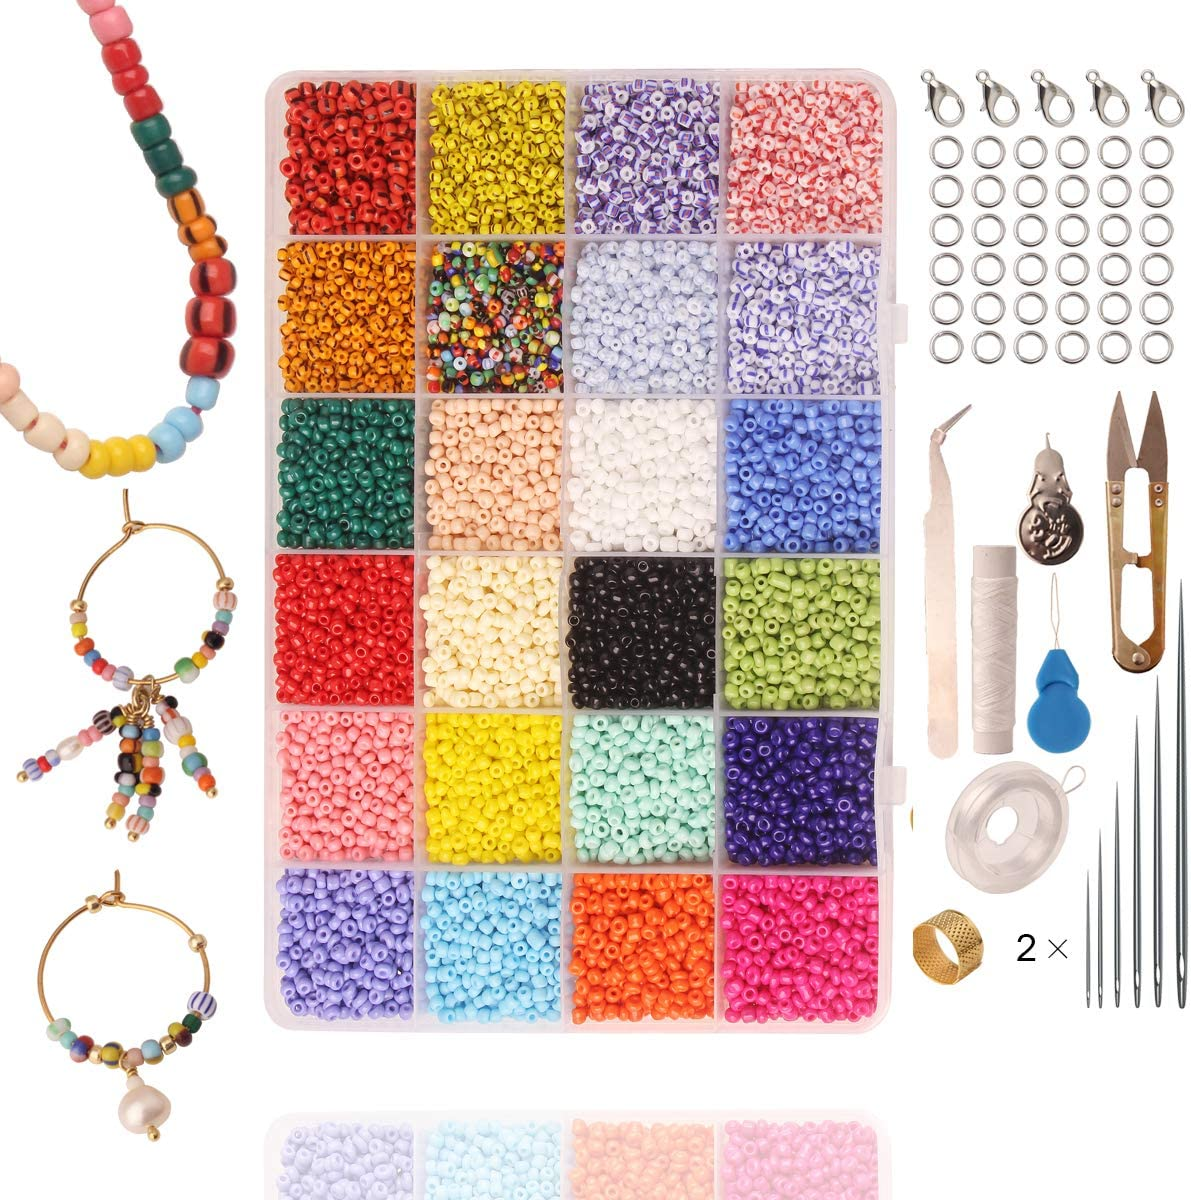 Amazon Com Glass Seed Beads Small Pony Stripe Beads Assorted Kit With Organizer Box For Jewelry Making Beading Crafting Round 3x2mm 8 0 24 Assorted Multicolor Set Arts Crafts Sewing